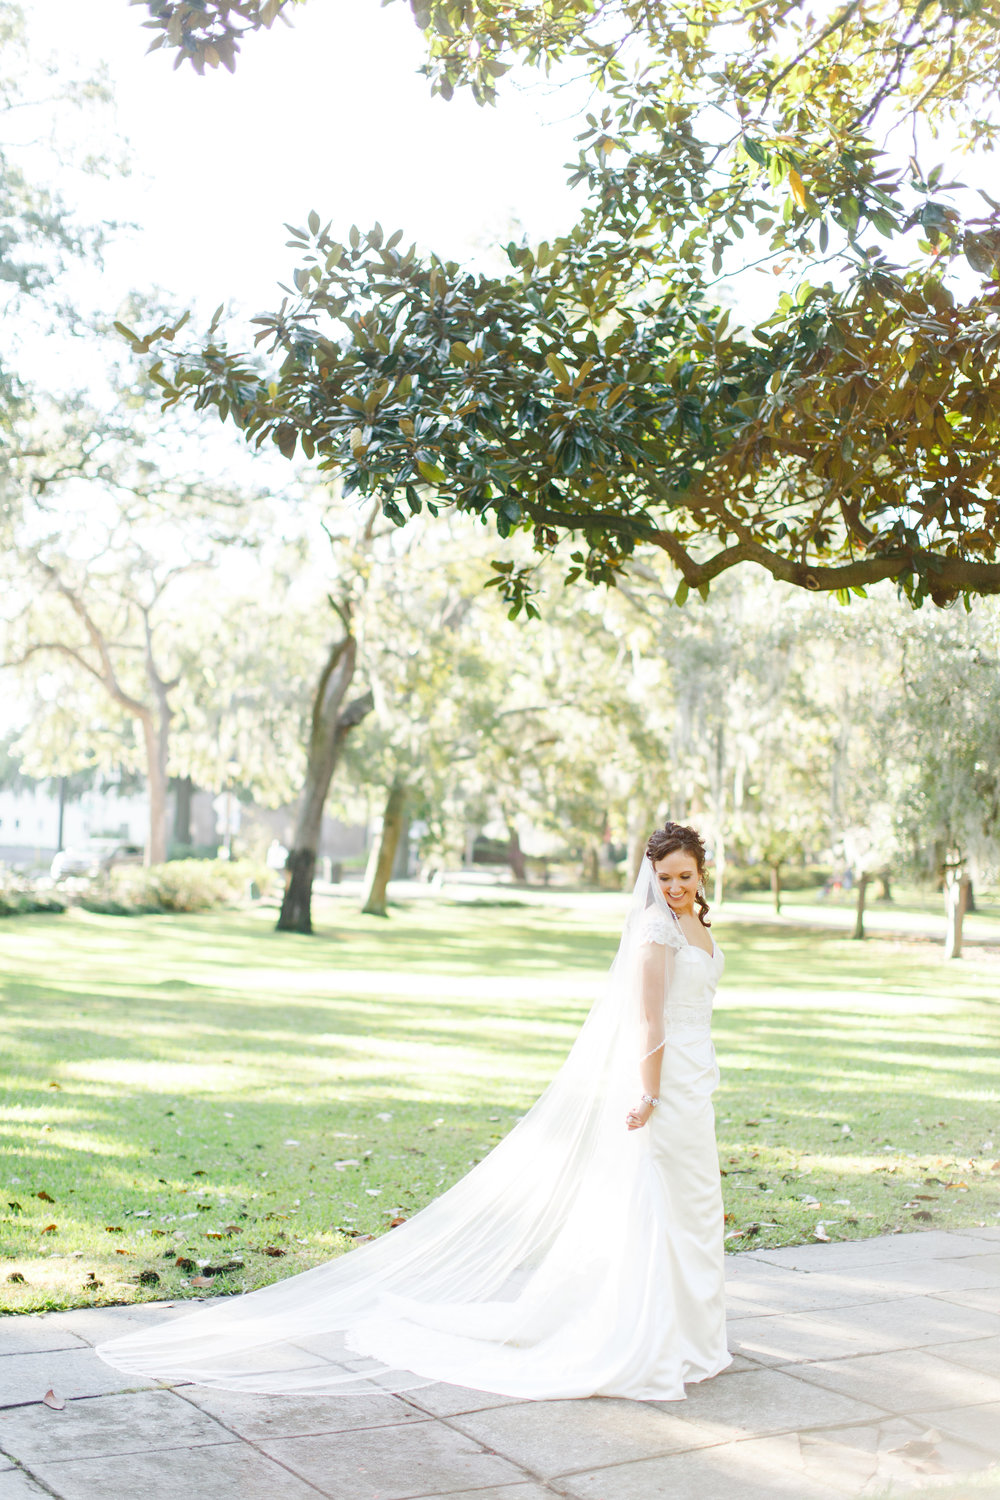 ivory-and-beau-bridal-boutique-aubrie-and-adam-the-happy-bloom-photography-savannah-wedding-planner-savannah-wedding-coordinator-9.jpg